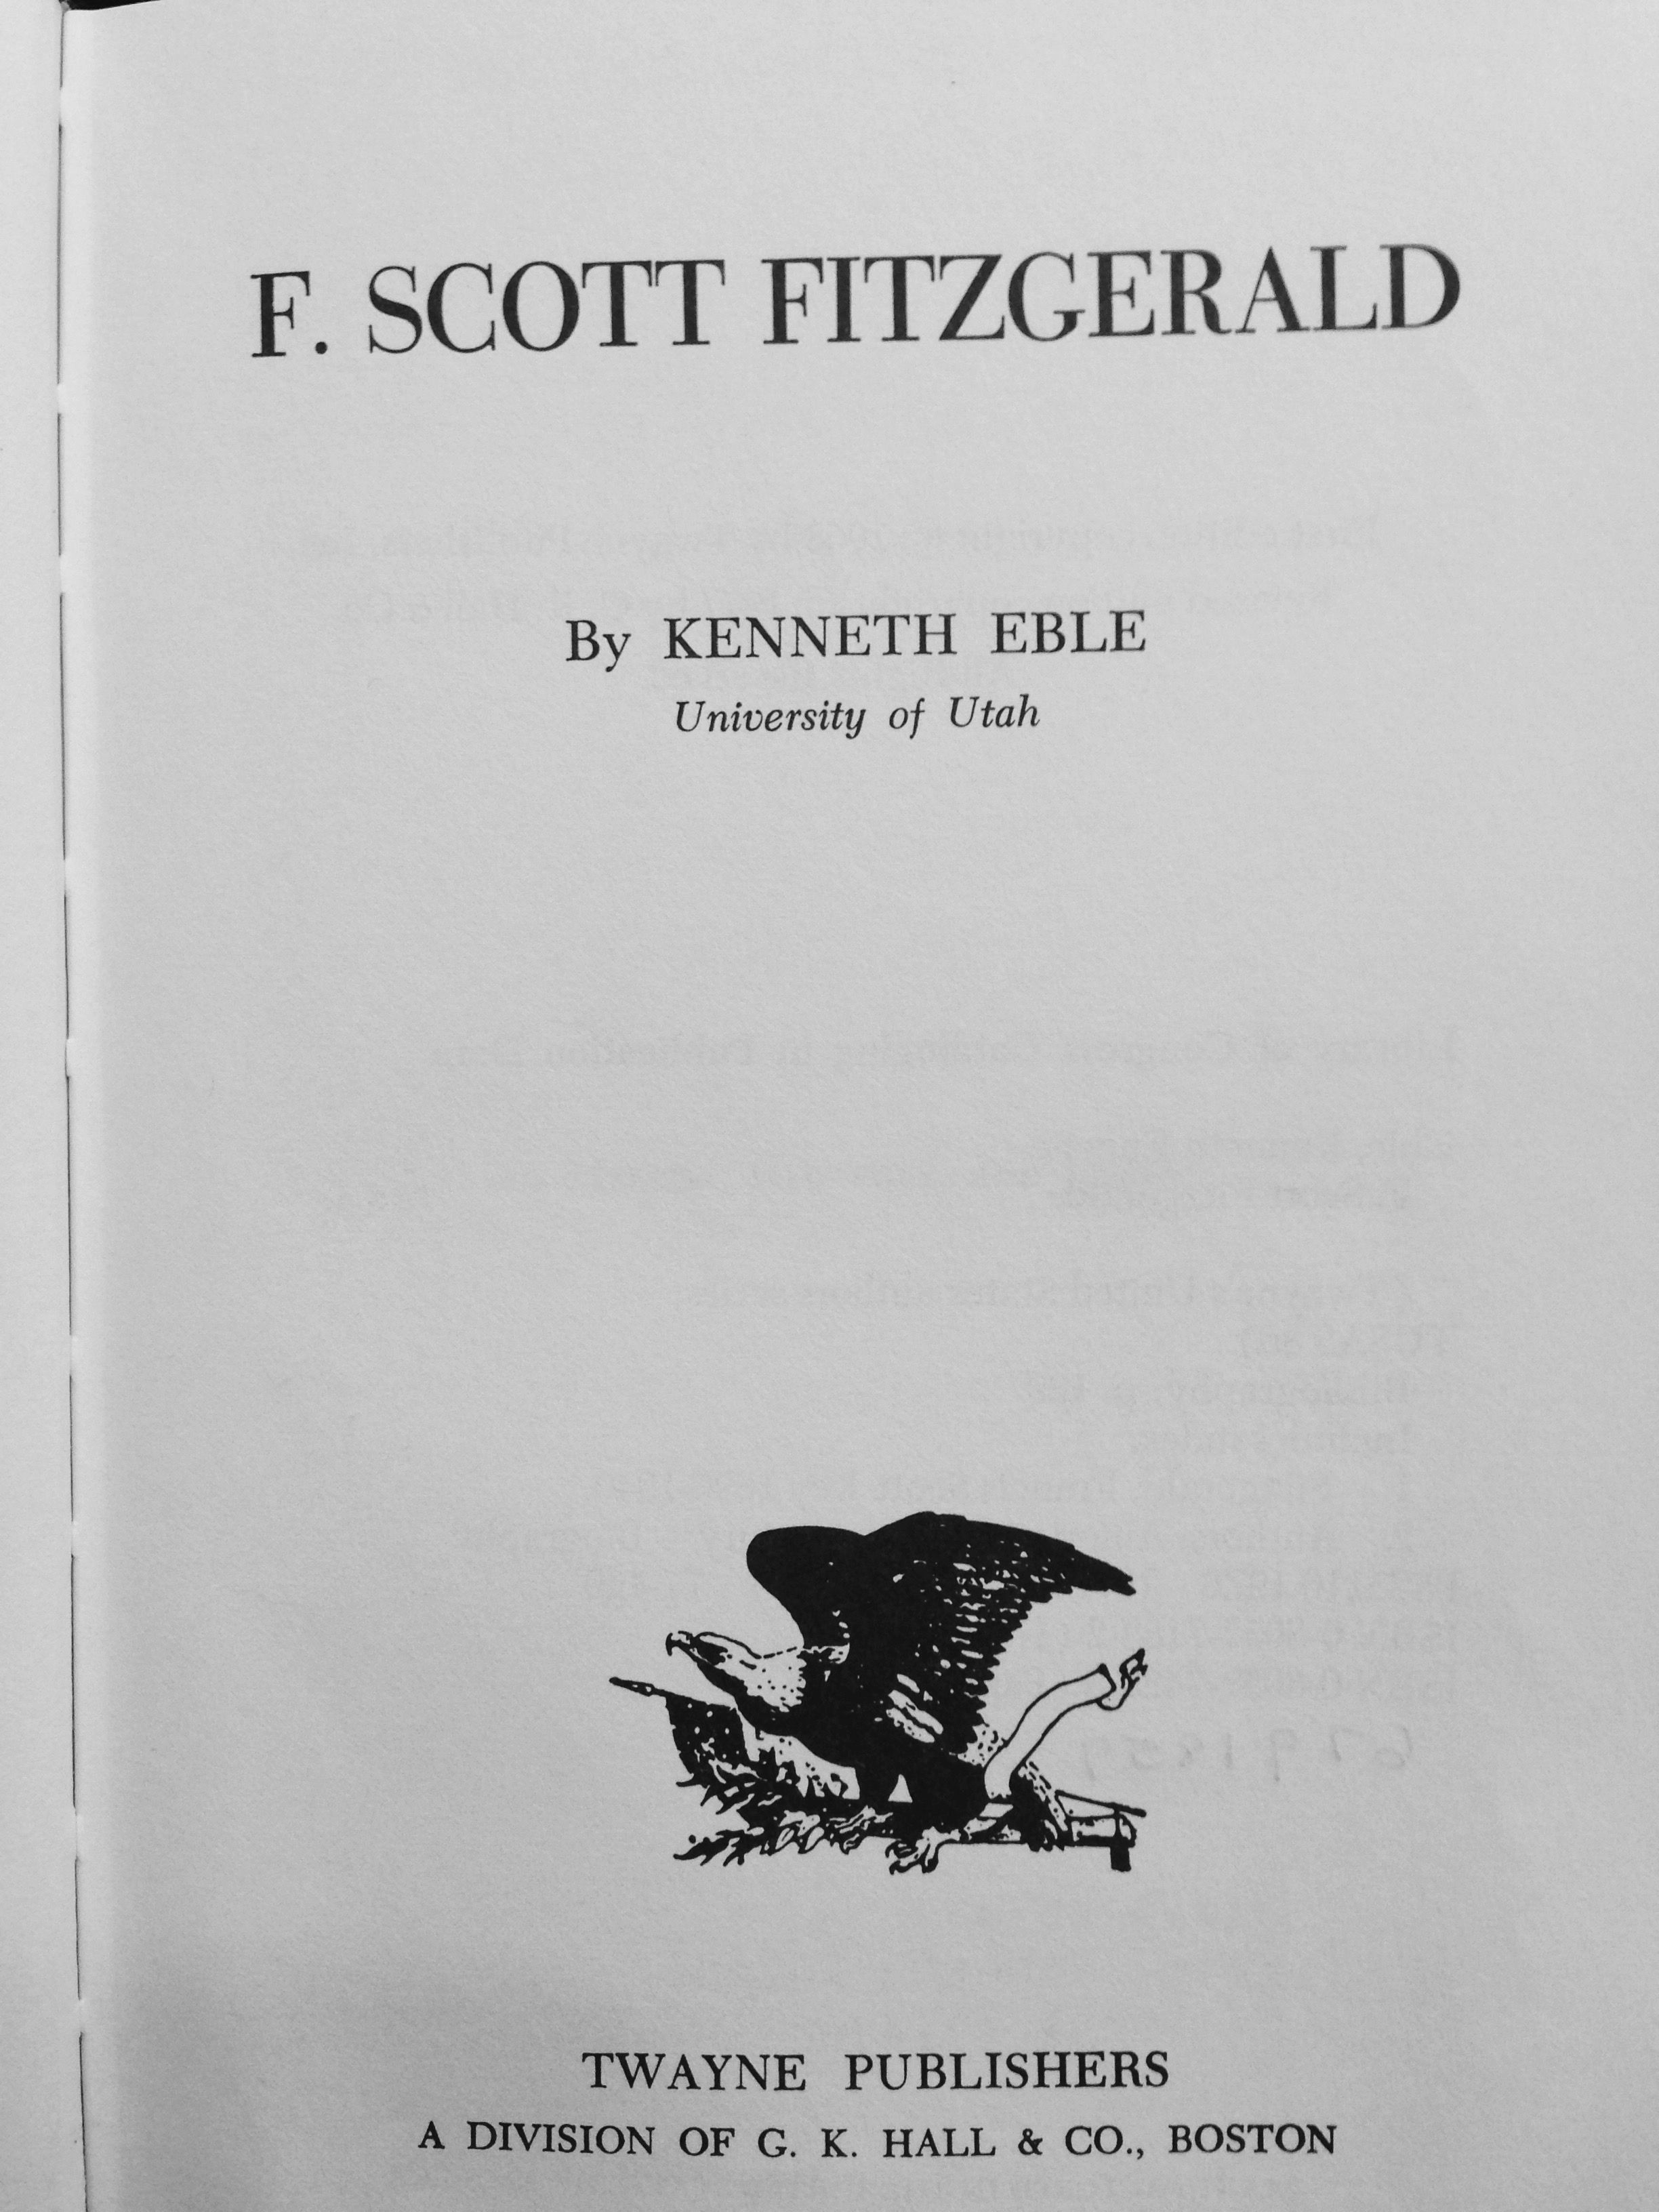 F. SCOTT FITZGERALD by Kenneth Eble  - a biography and a literary criticism of his works